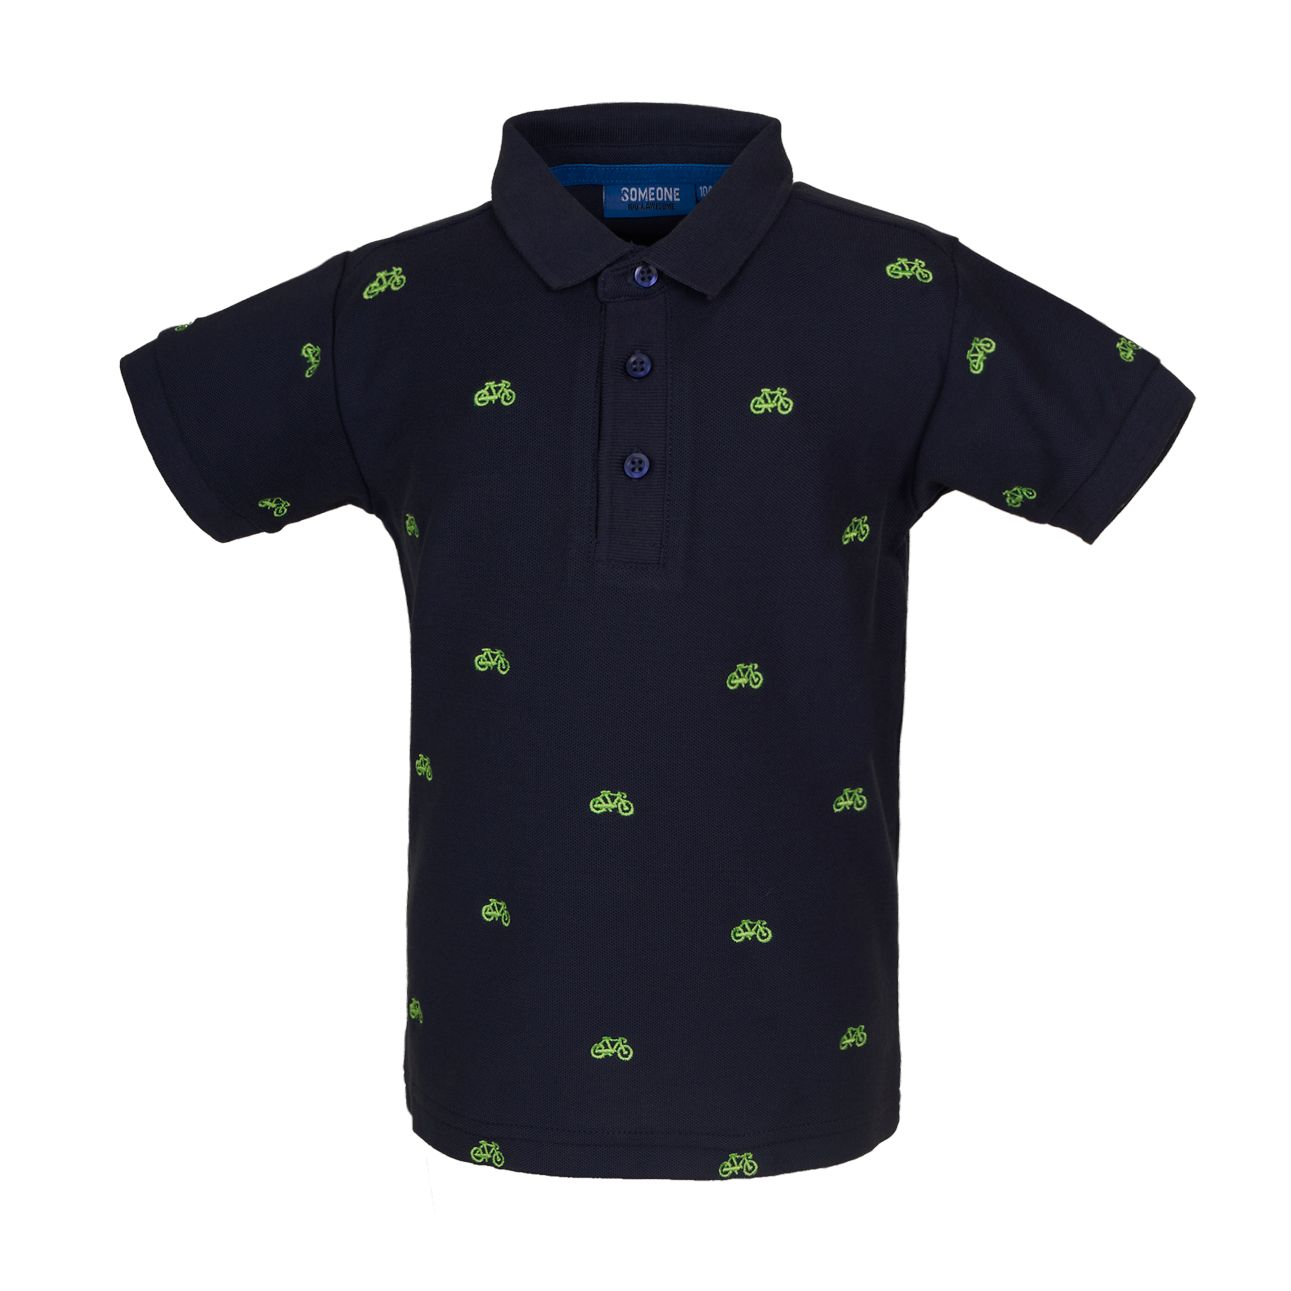 Polo Shirt Fahrrad 128 Navy SOMEONE 100% Awesome